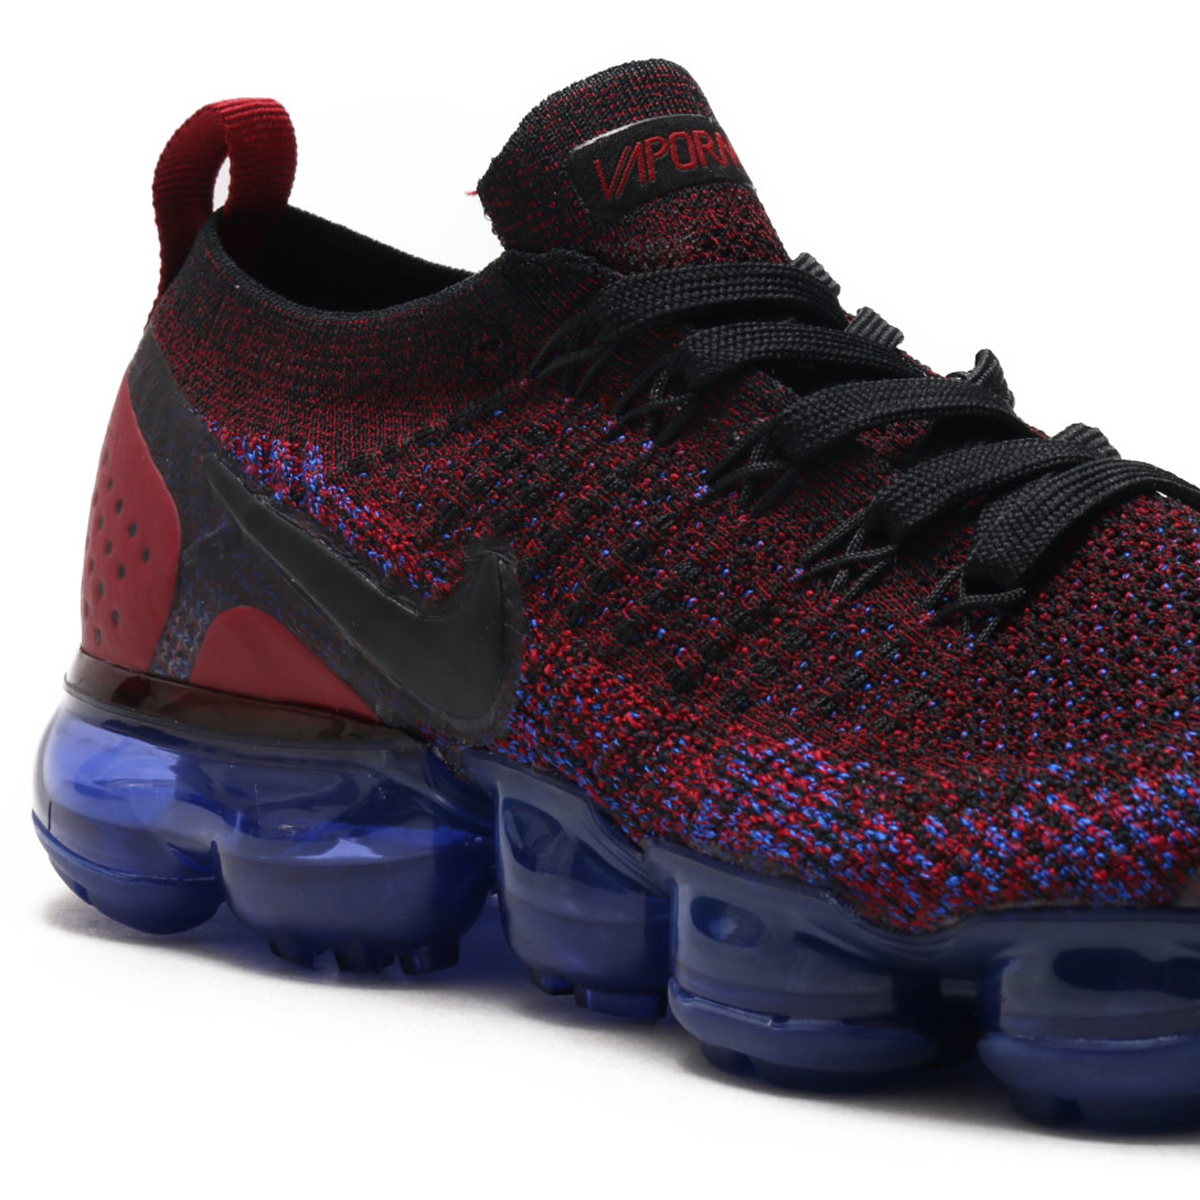 NIKE WMNS AIR VAPORMAX FLYKNIT 2 (Nike women air vapor max fried food knit 2)  (BLACK BLACK-TEAM RED-RACER BLUE) 18SU-S 25004e285